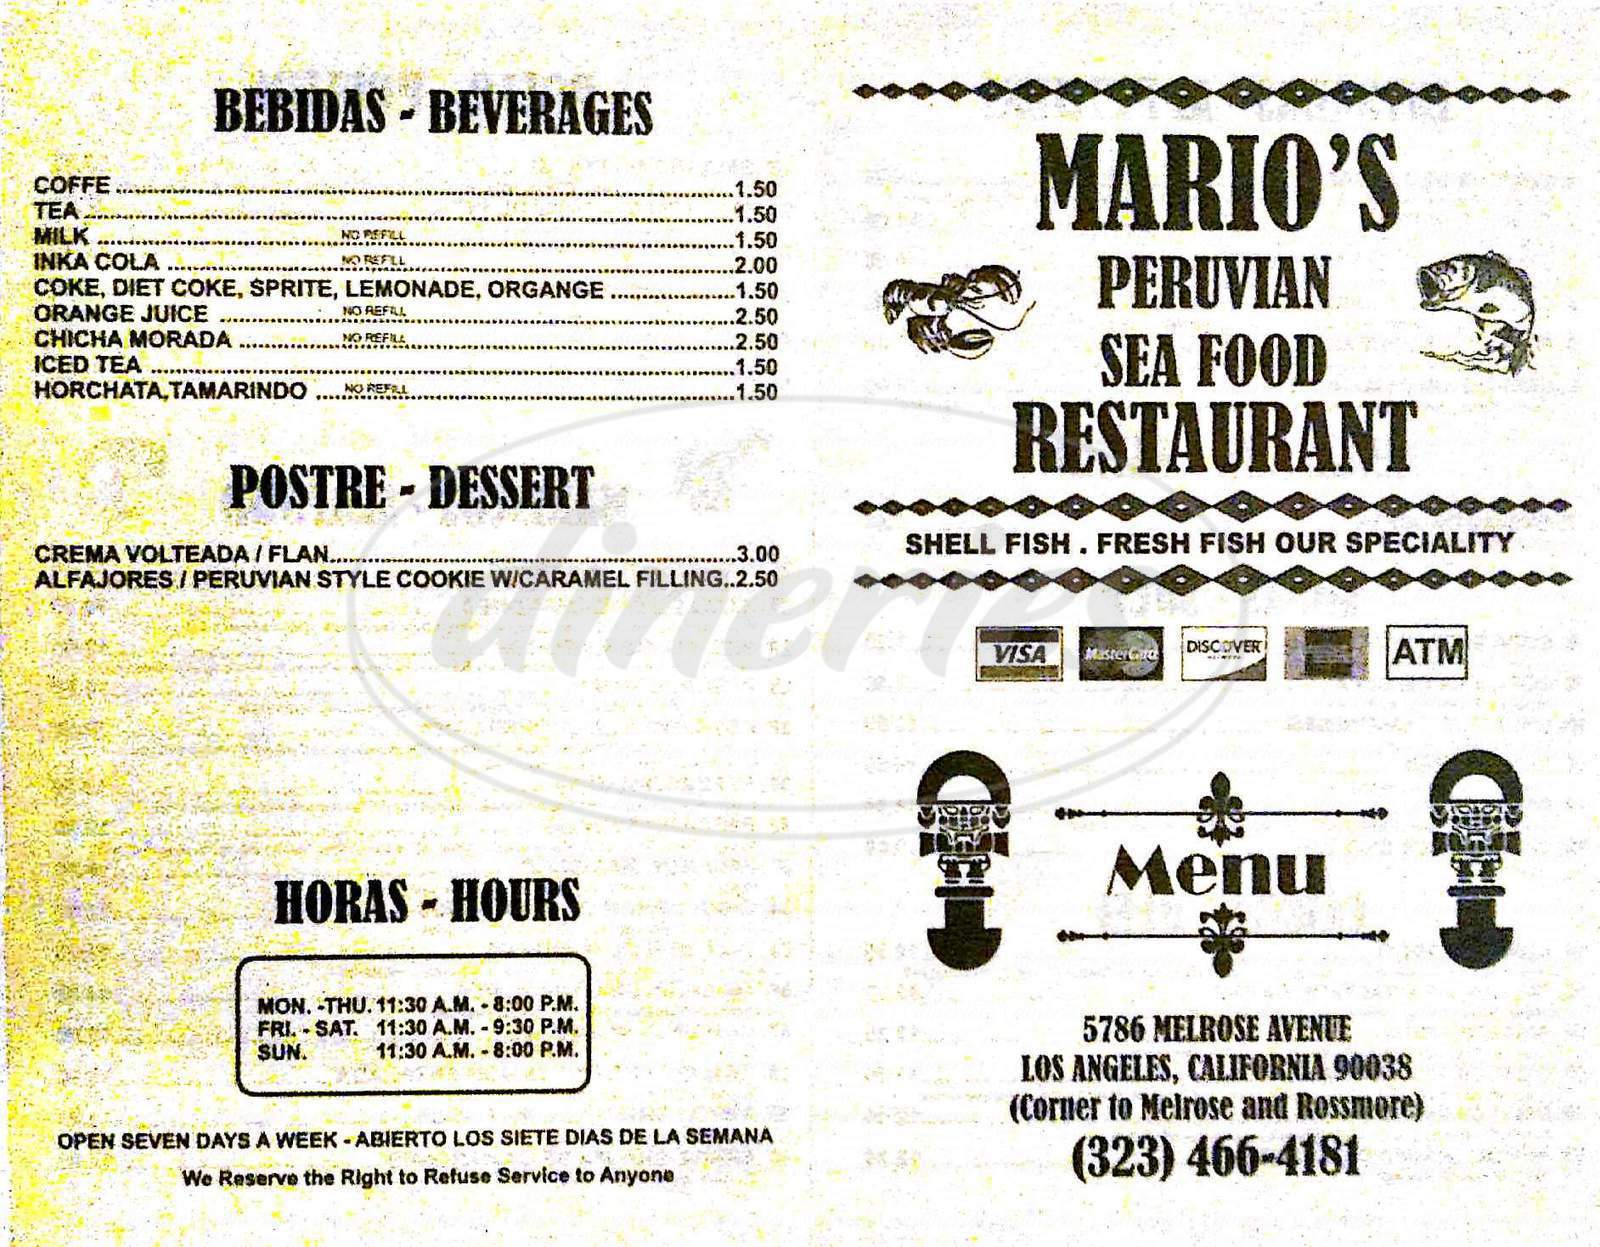 menu for Marios Peruvian Restaurant